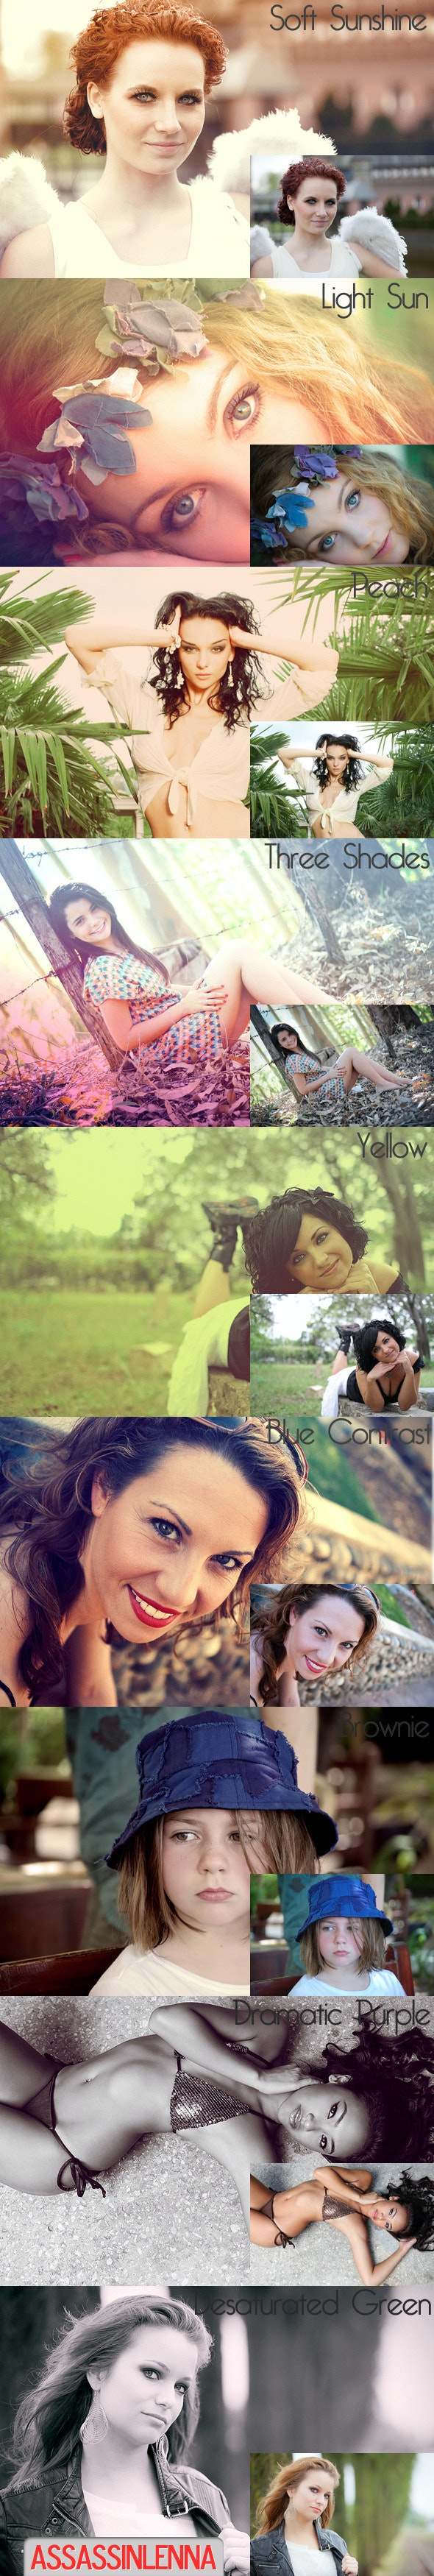 Photoshoot Pt.2 PS Effects - Photo Effects Actions